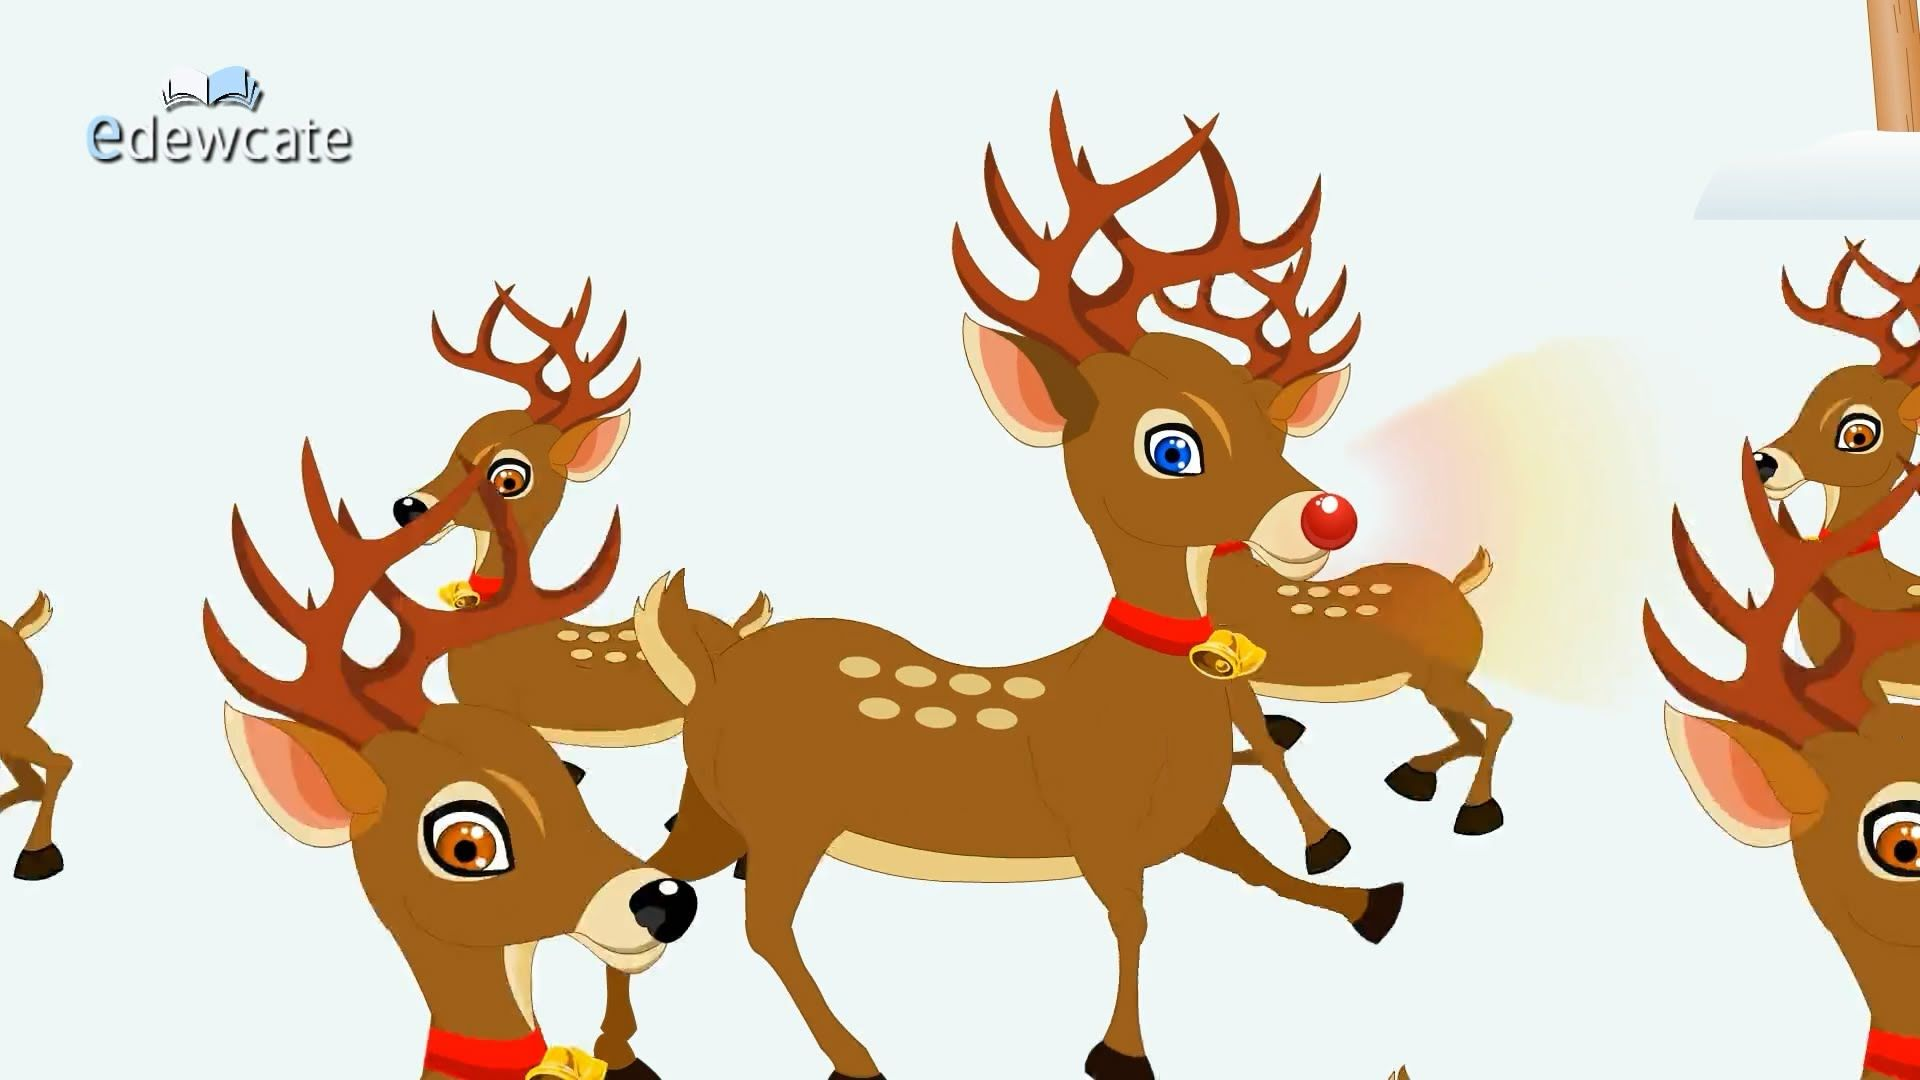 Uncategorized Rudolph The Red Nosed Reindeer Song Video rudolph the red nosed reindeer christmas songs for kids kids